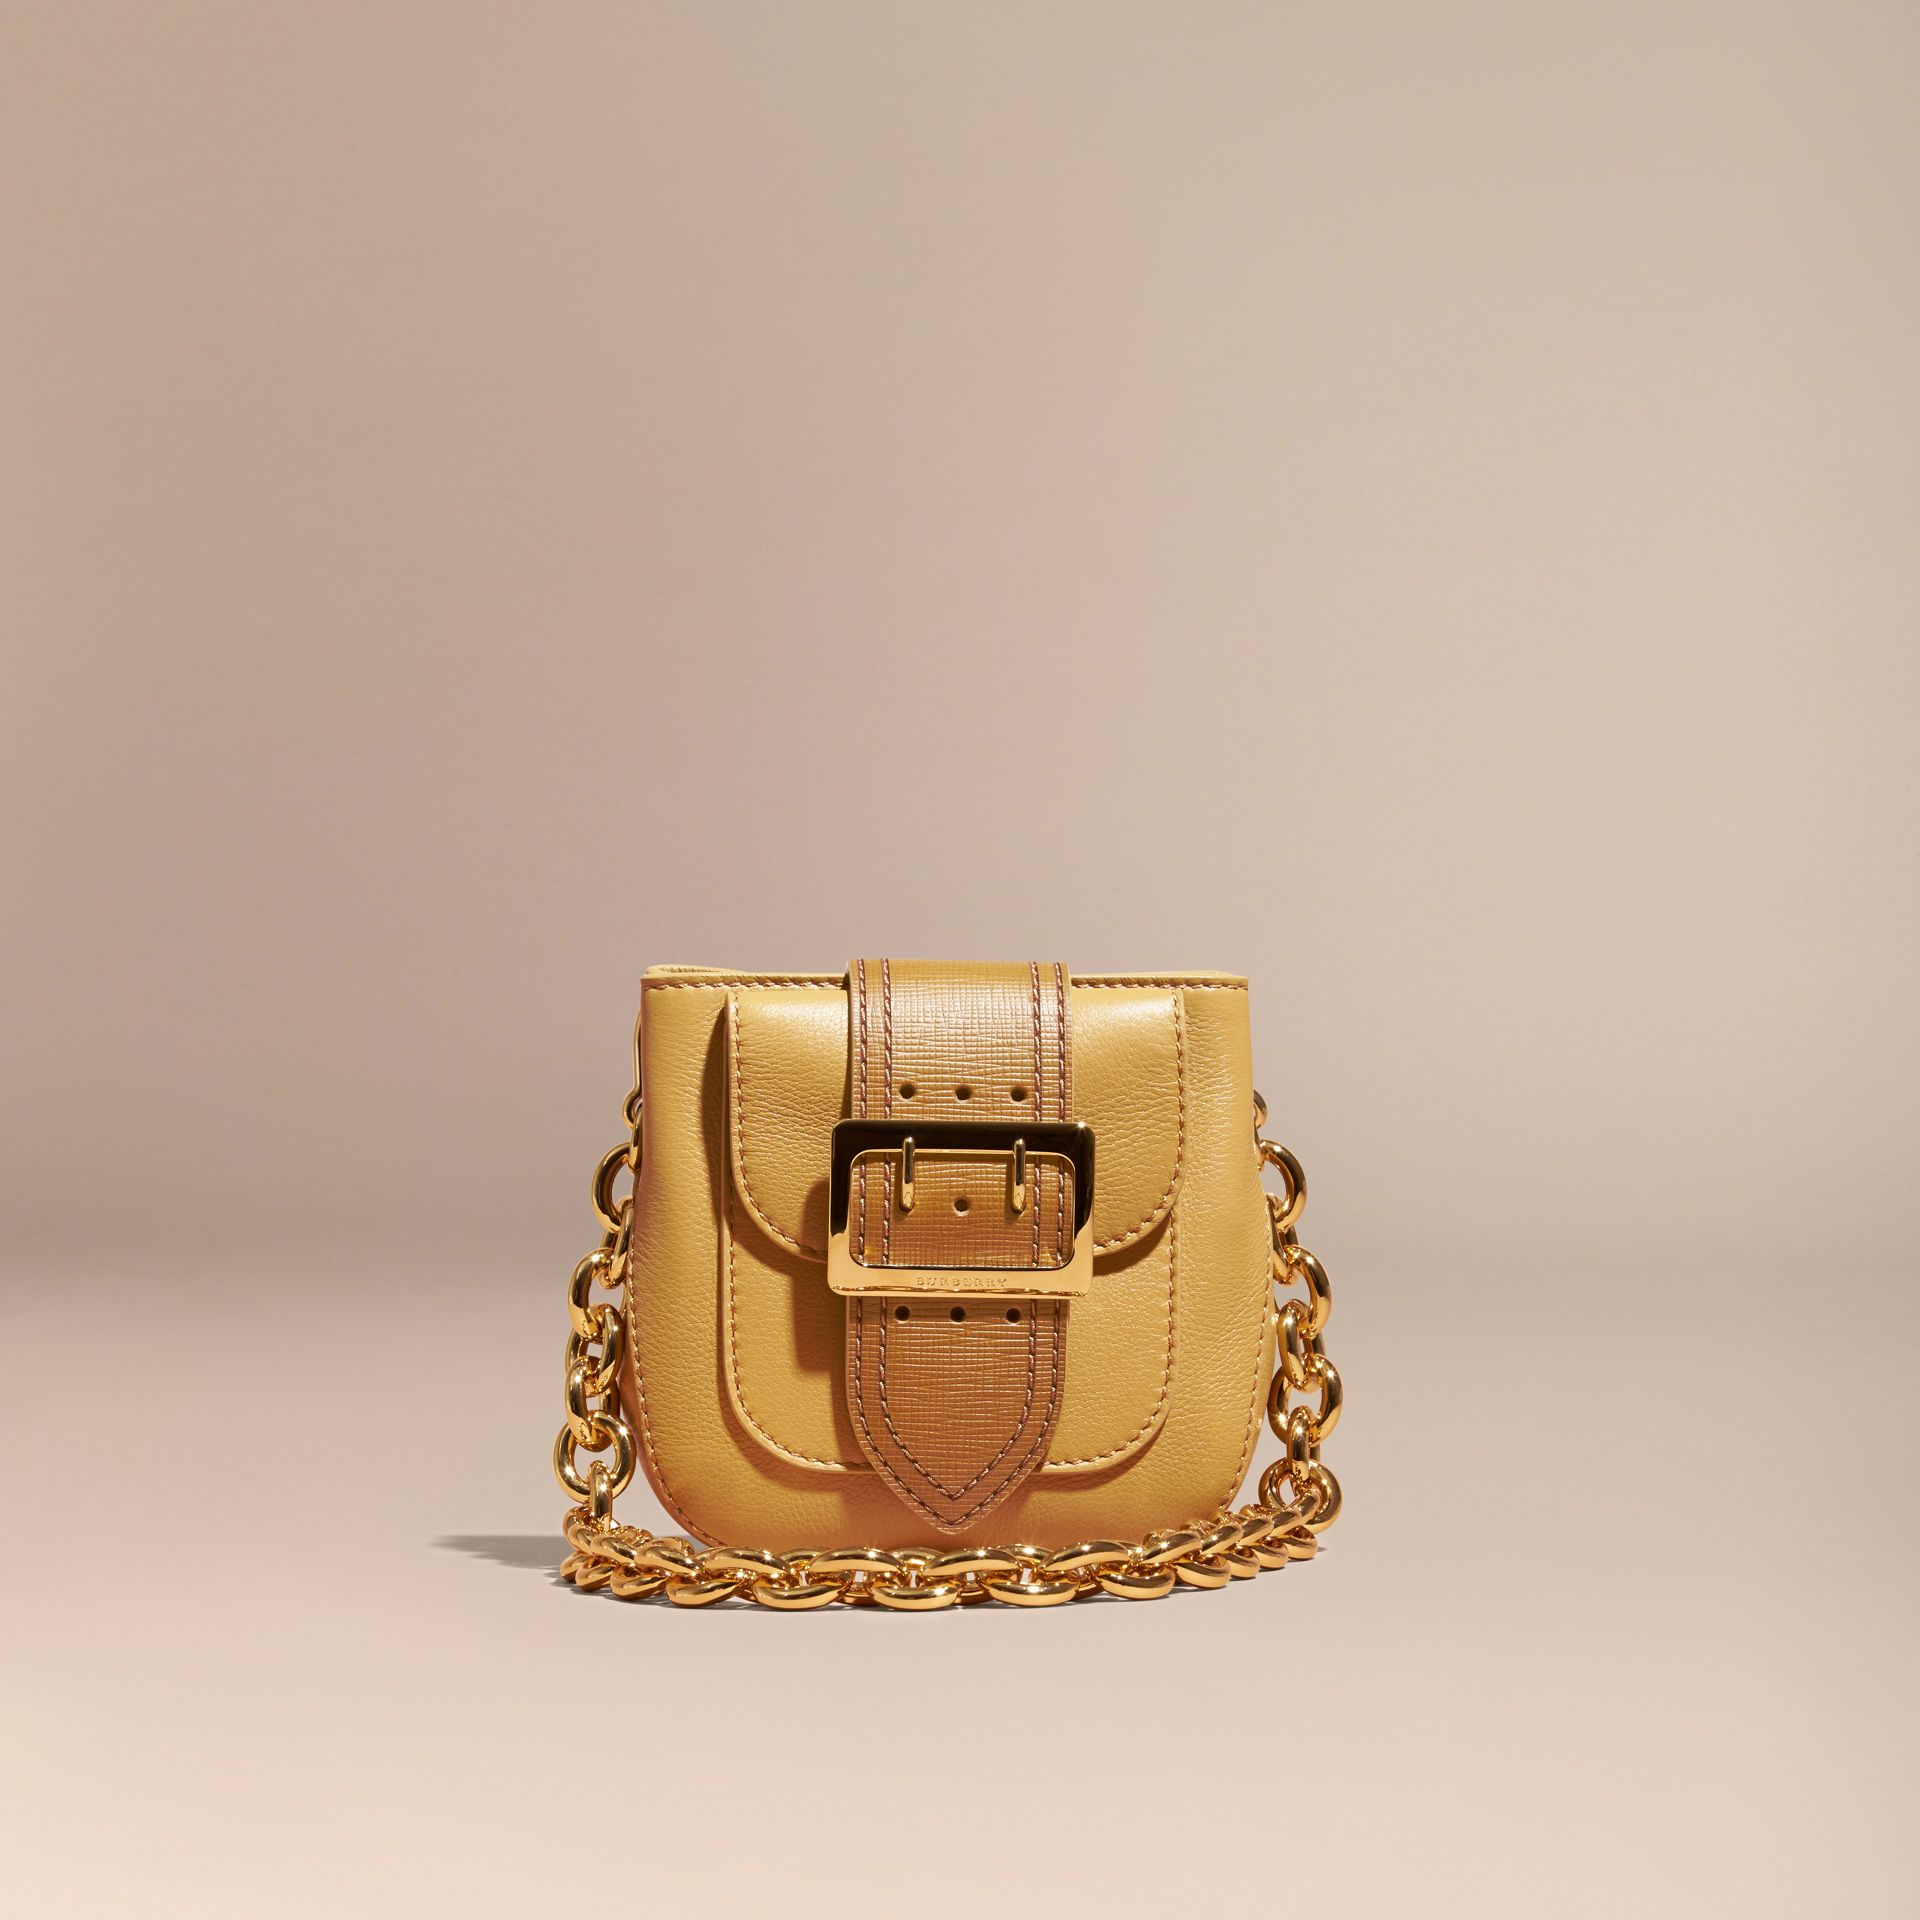 Ochre yellow The Small Square Buckle Bag in Leather - gallery image 9